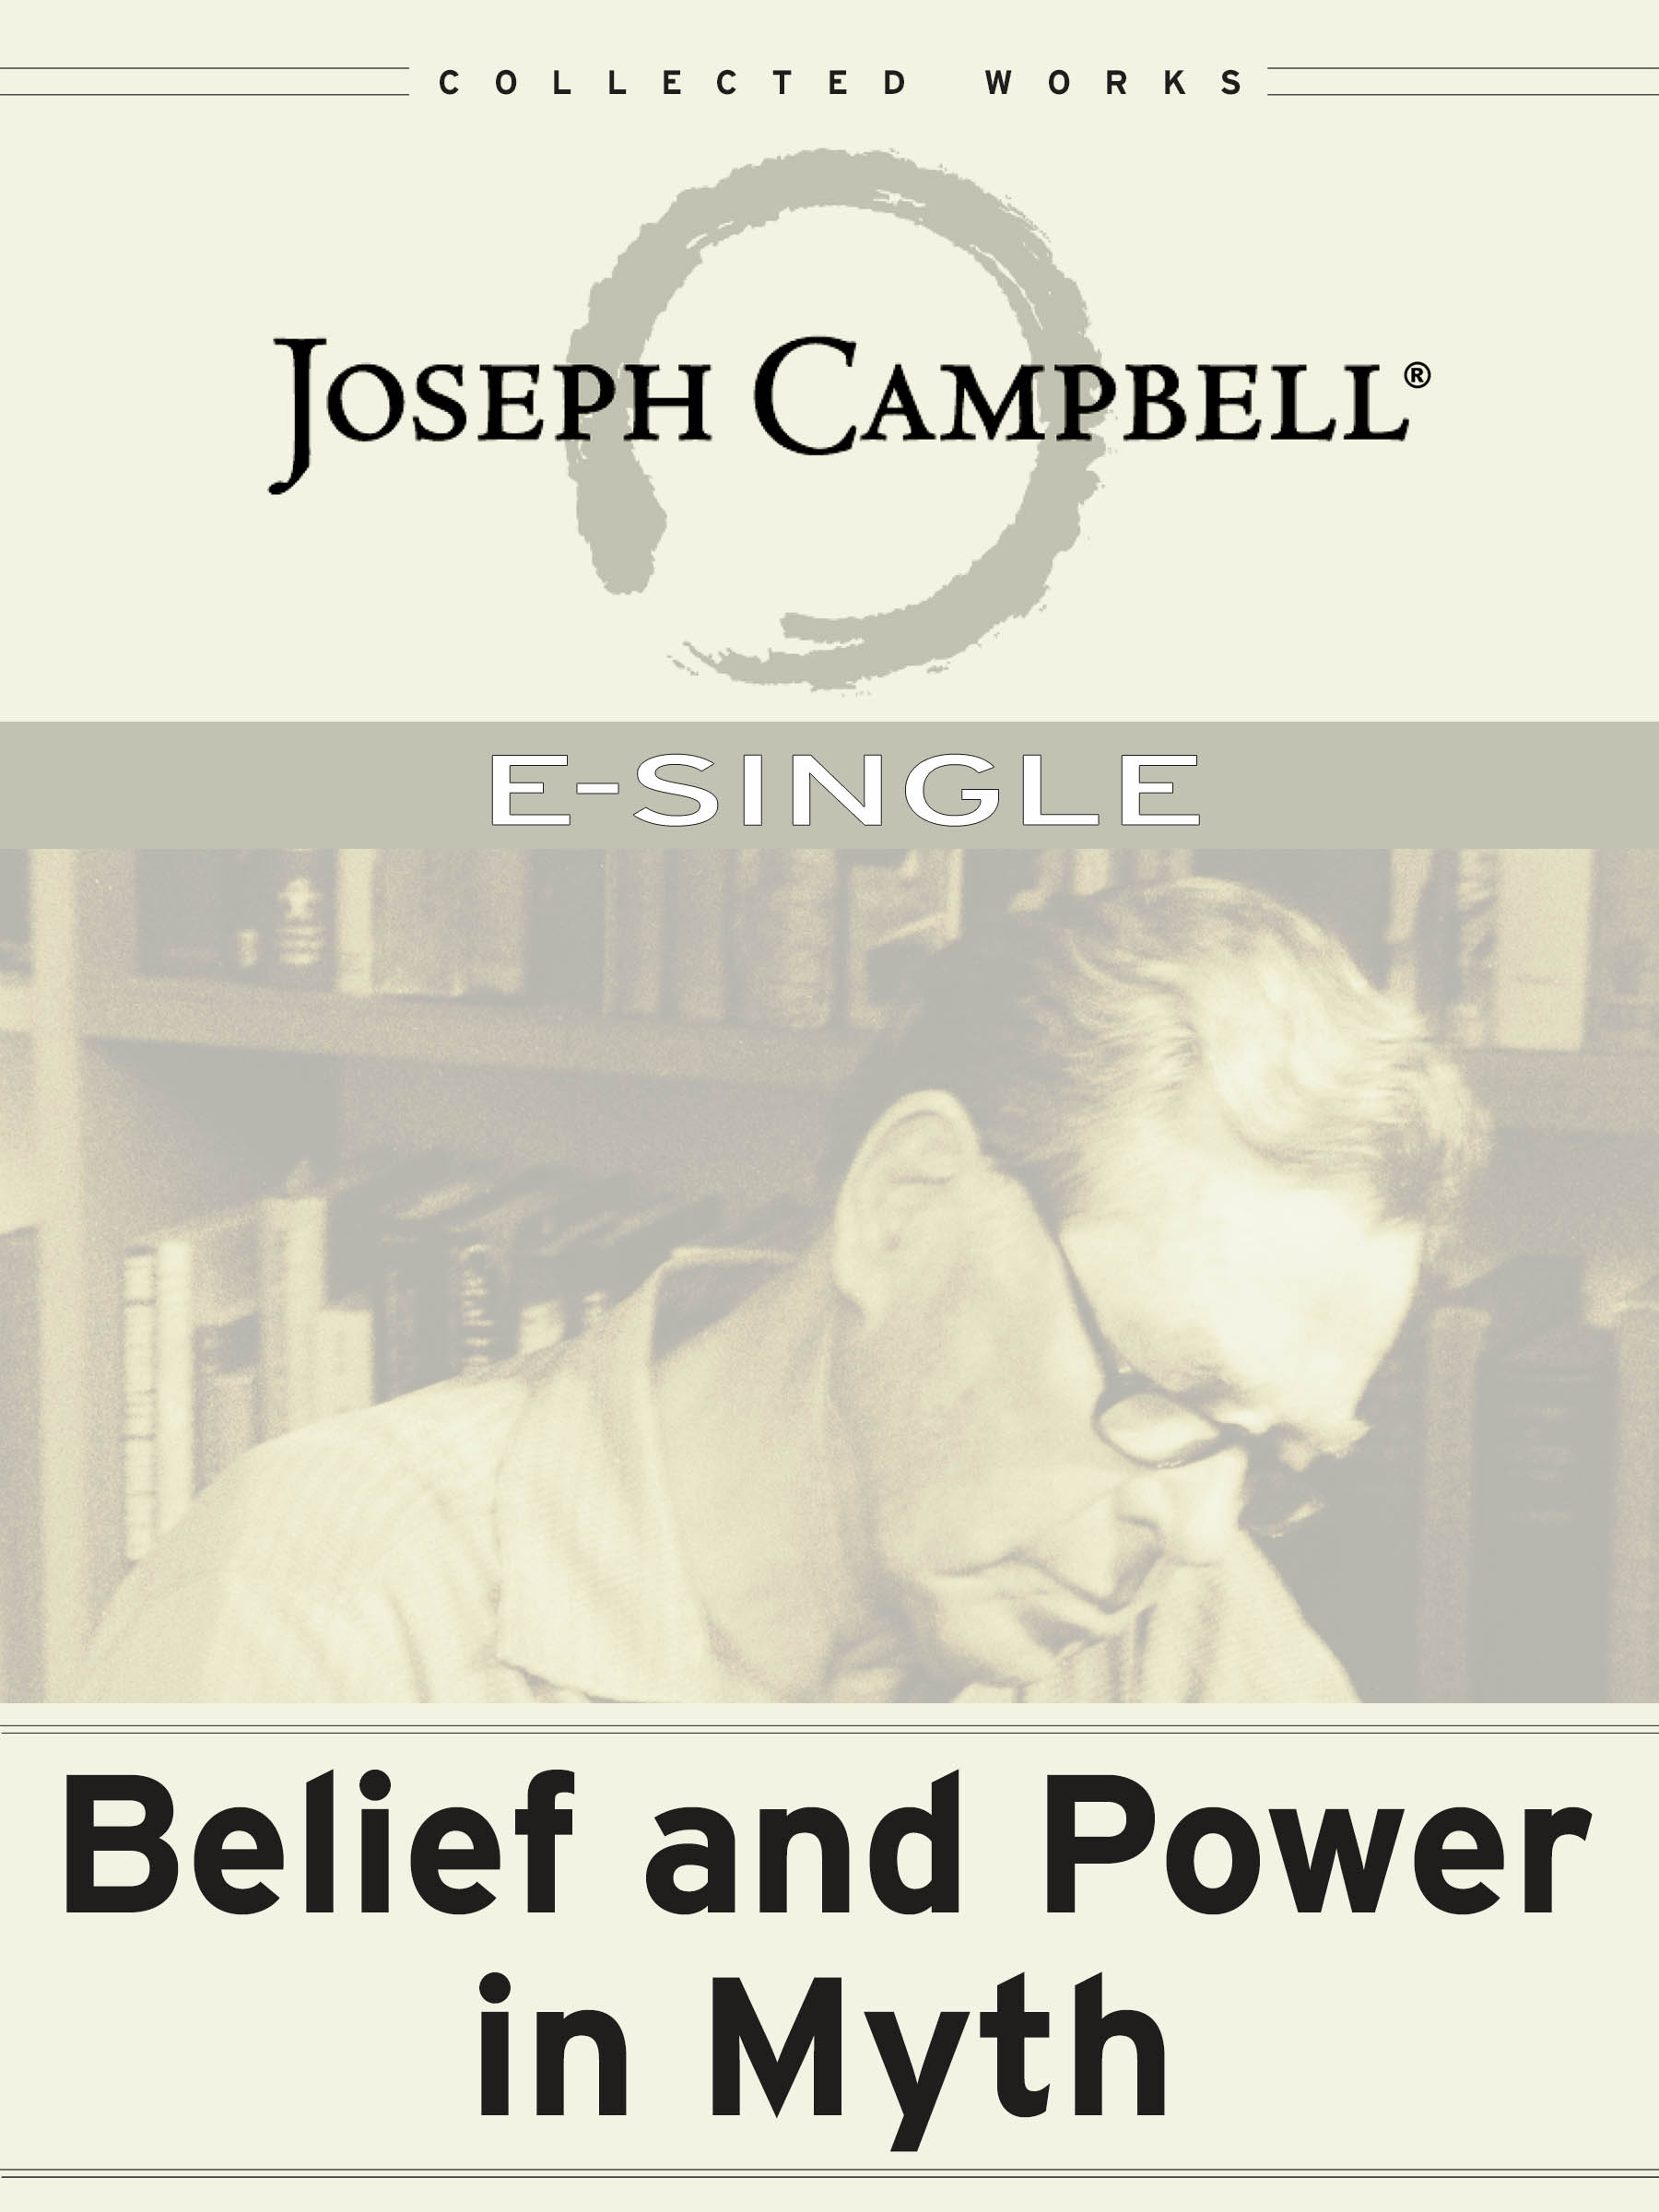 eSingle: Belief and Power in Myth